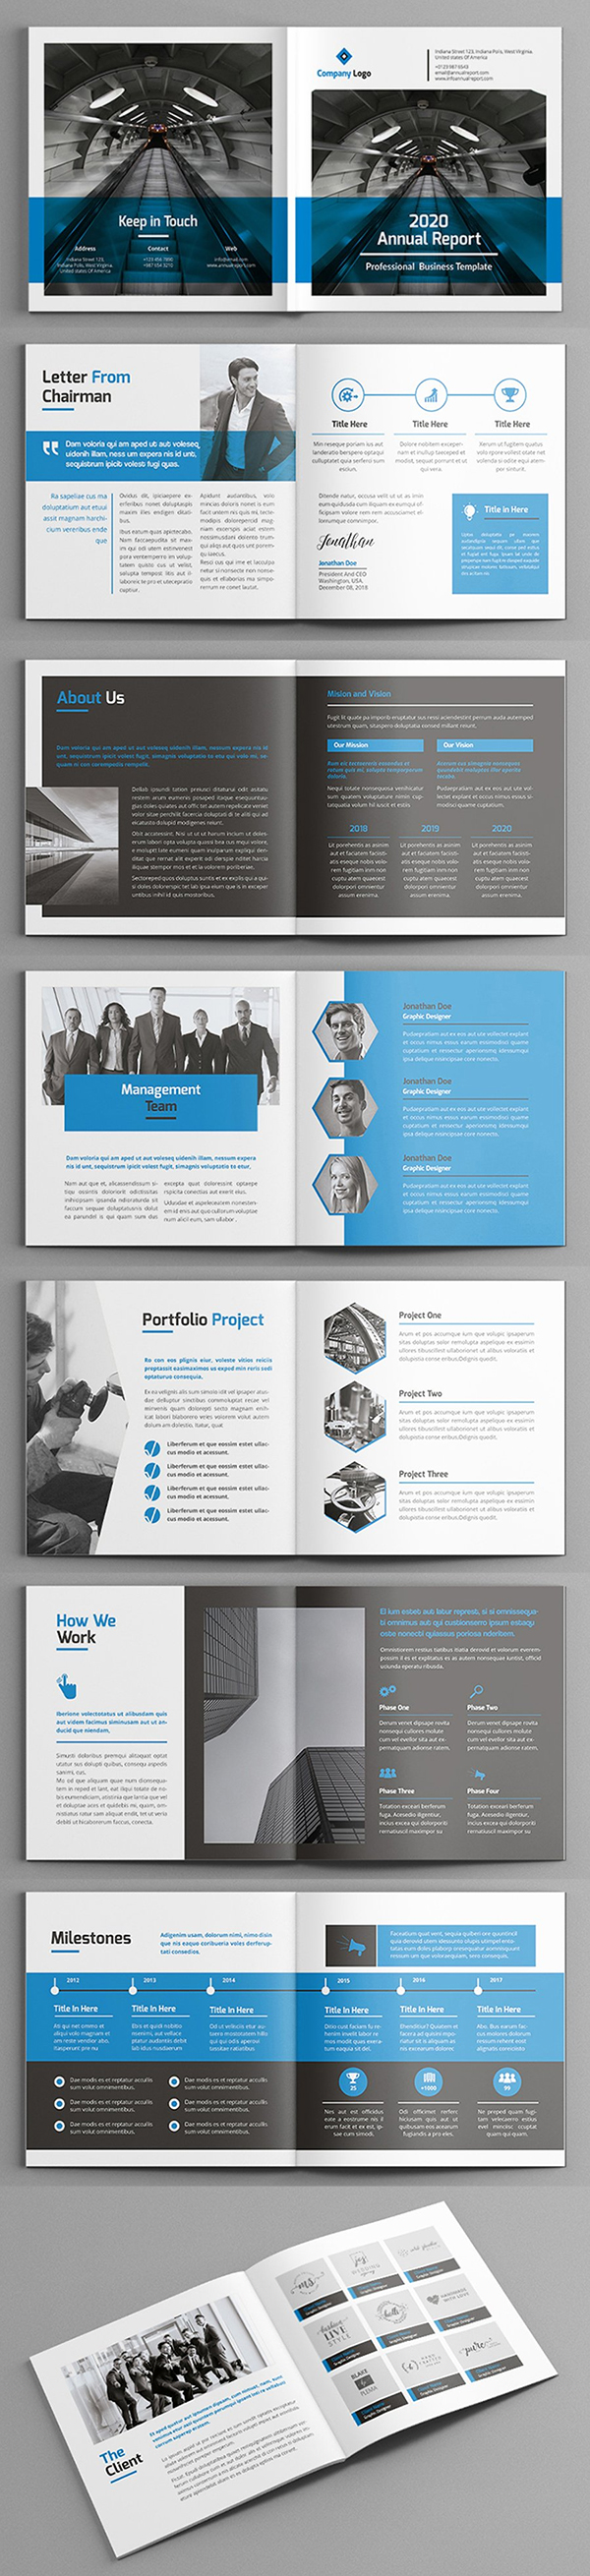 Mblandang - Square Annual Report